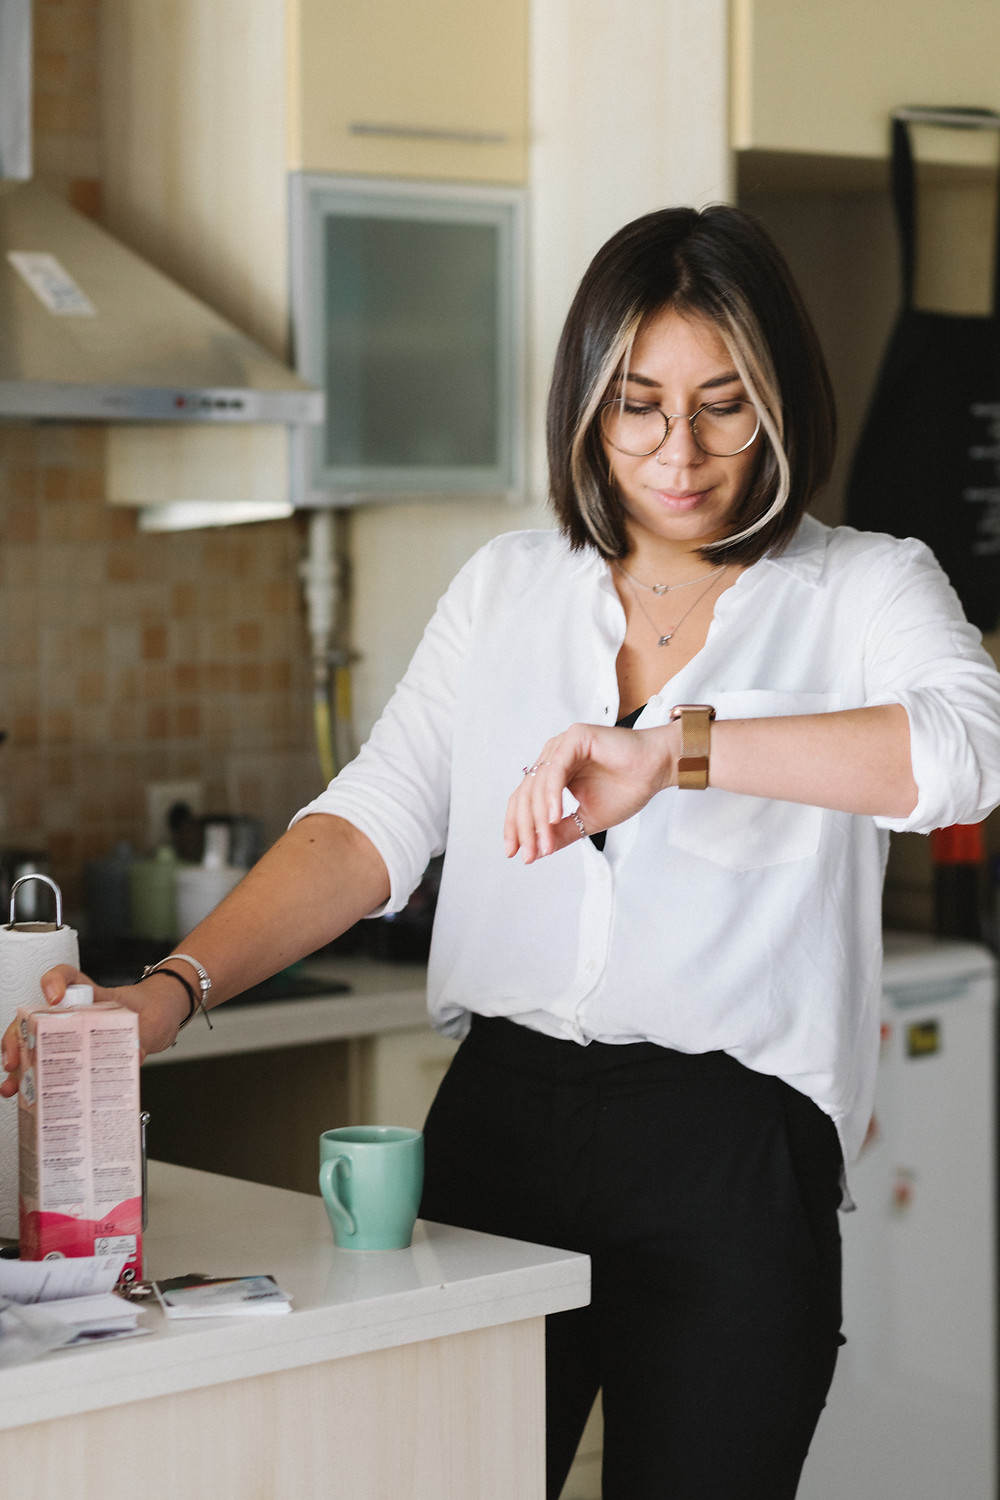 A woman checks her watch while standing in a kitchen.